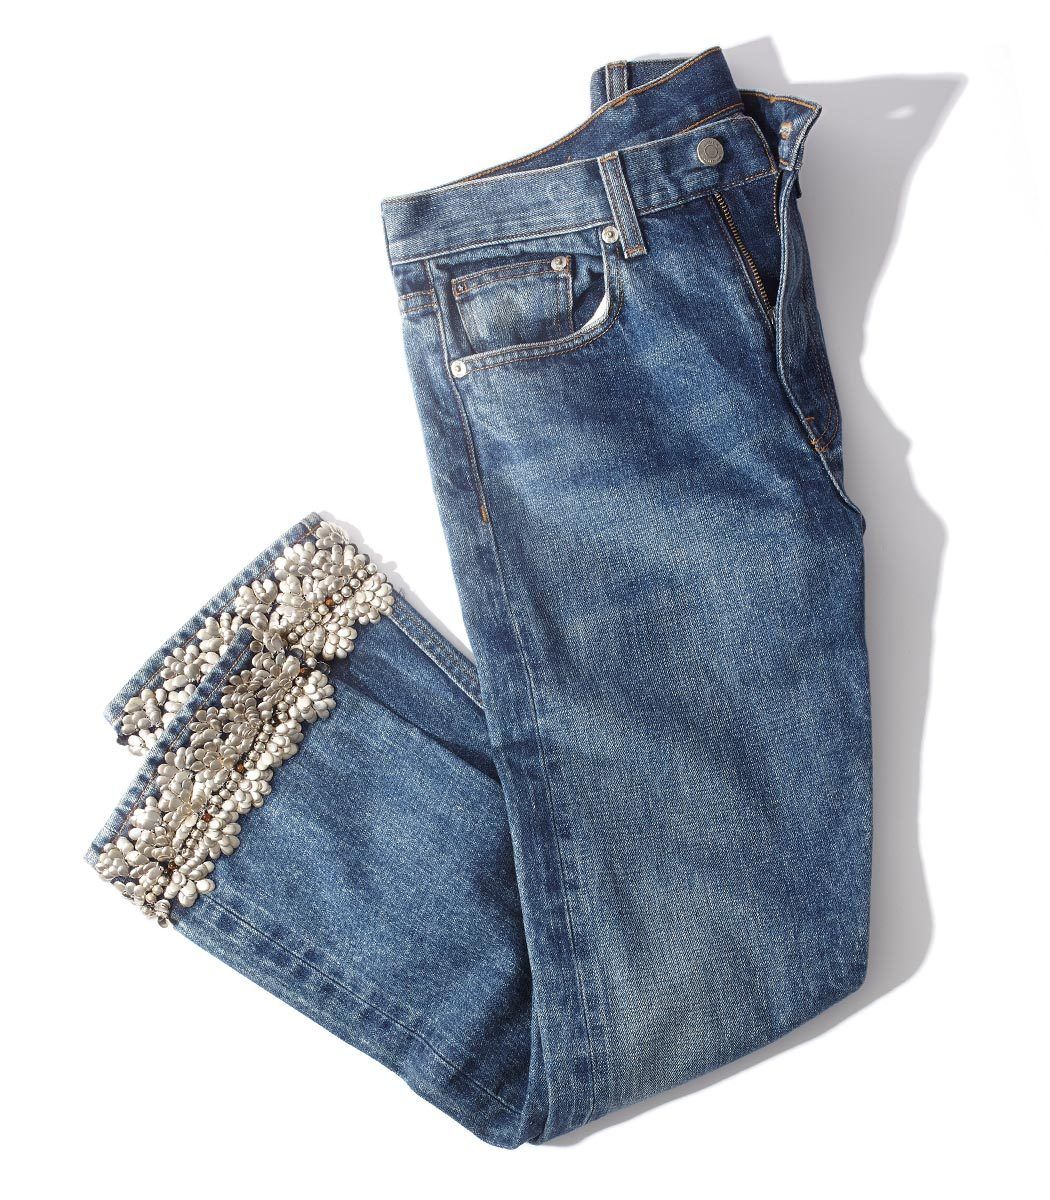 3dfebd26b26 BROCK COLLECTION Silver Embellished Jean - Denim blue mid-rise fit  featuring a straight leg silhouette with embellished trim detail at hem.